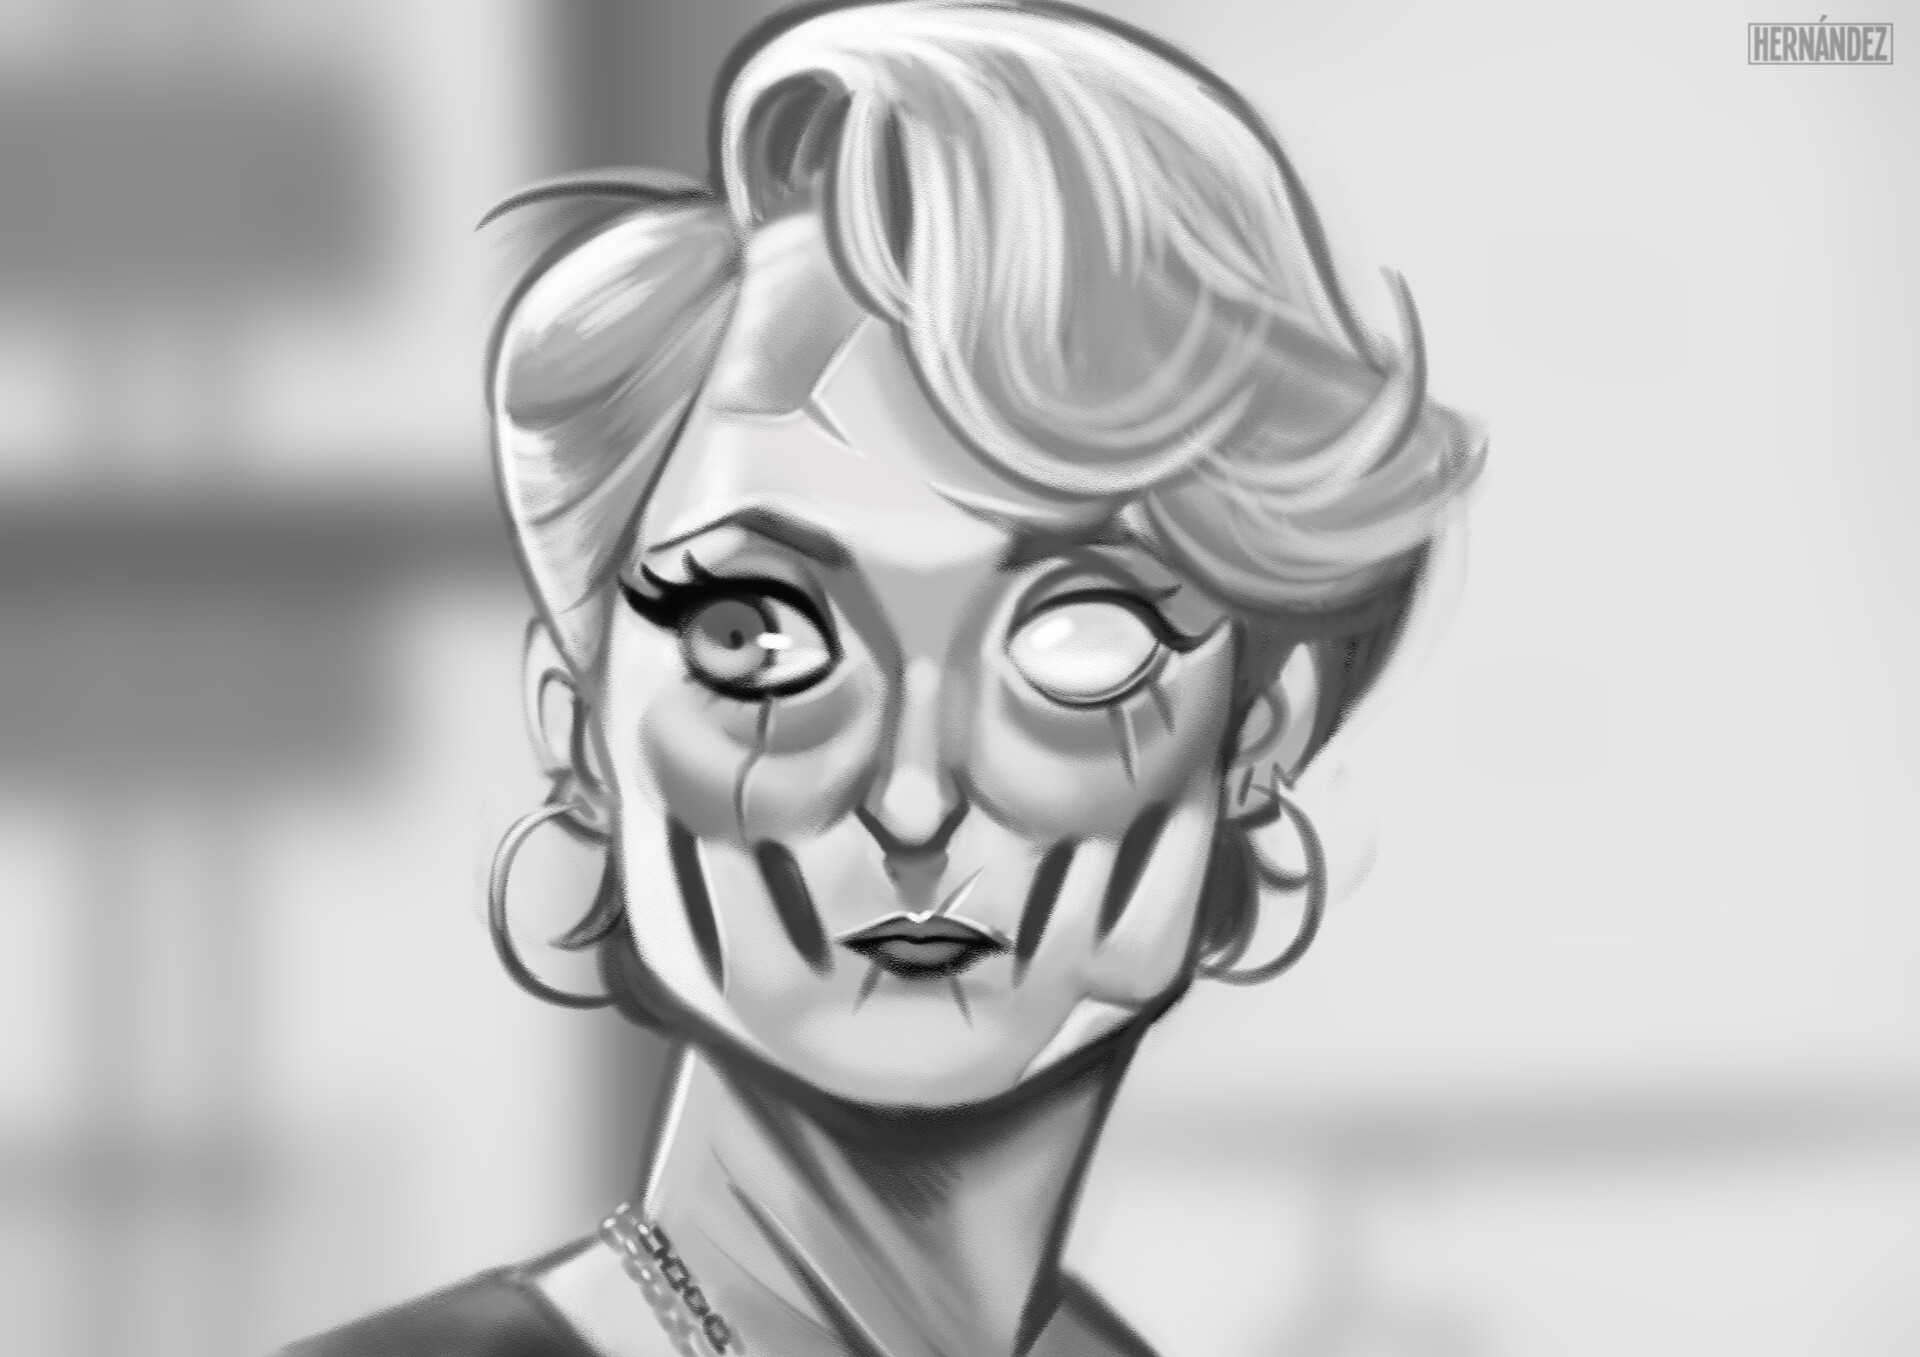 The devil wears prada.